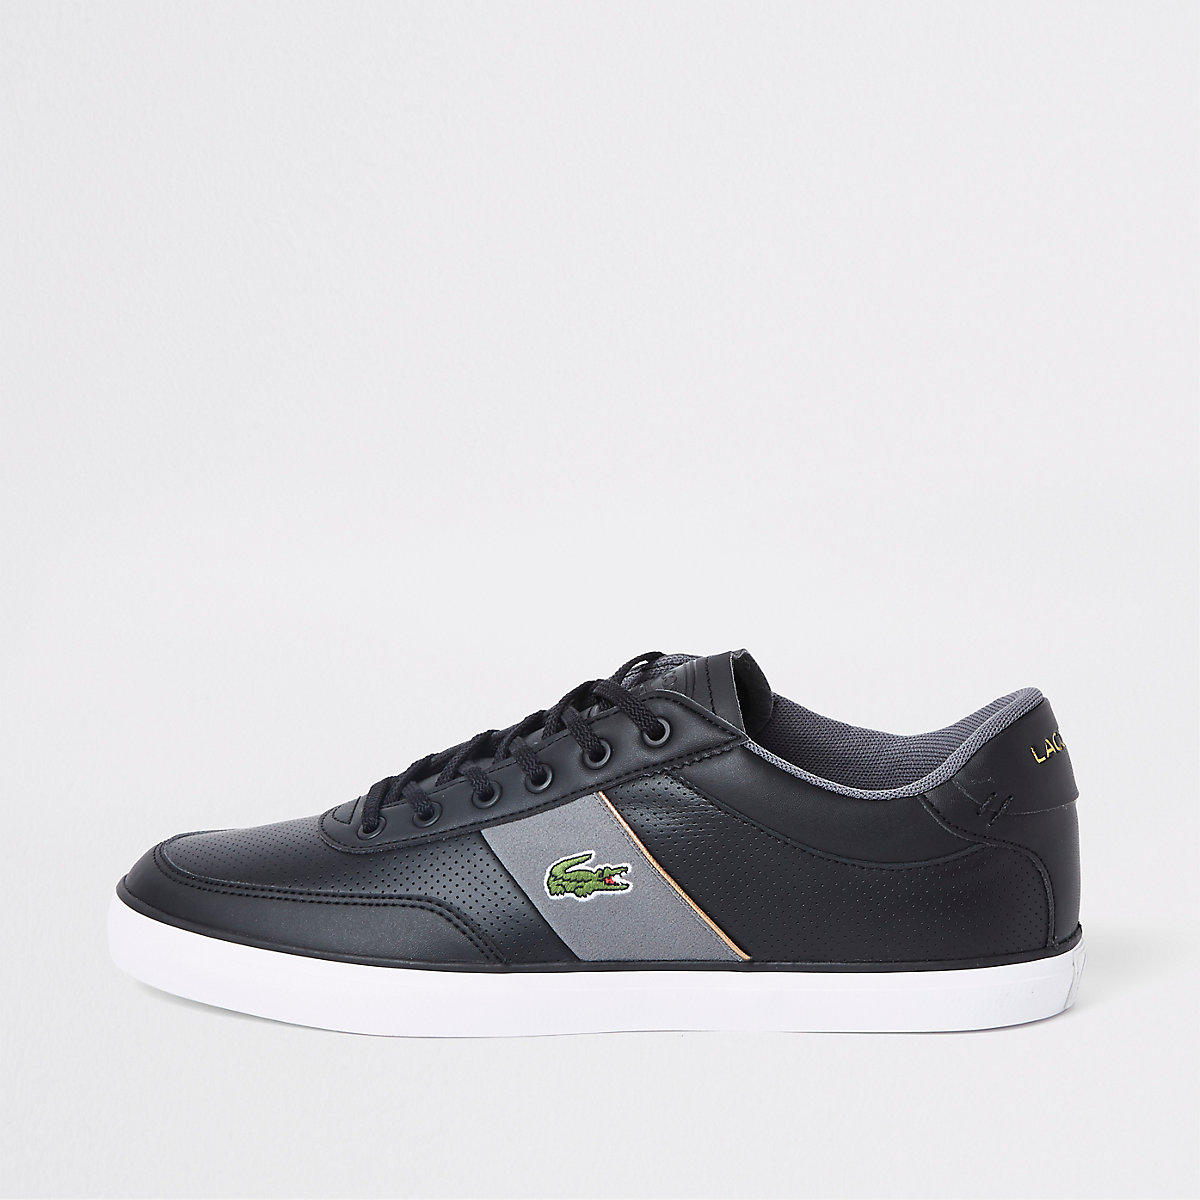 Lacoste black leather Courtmaster trainers